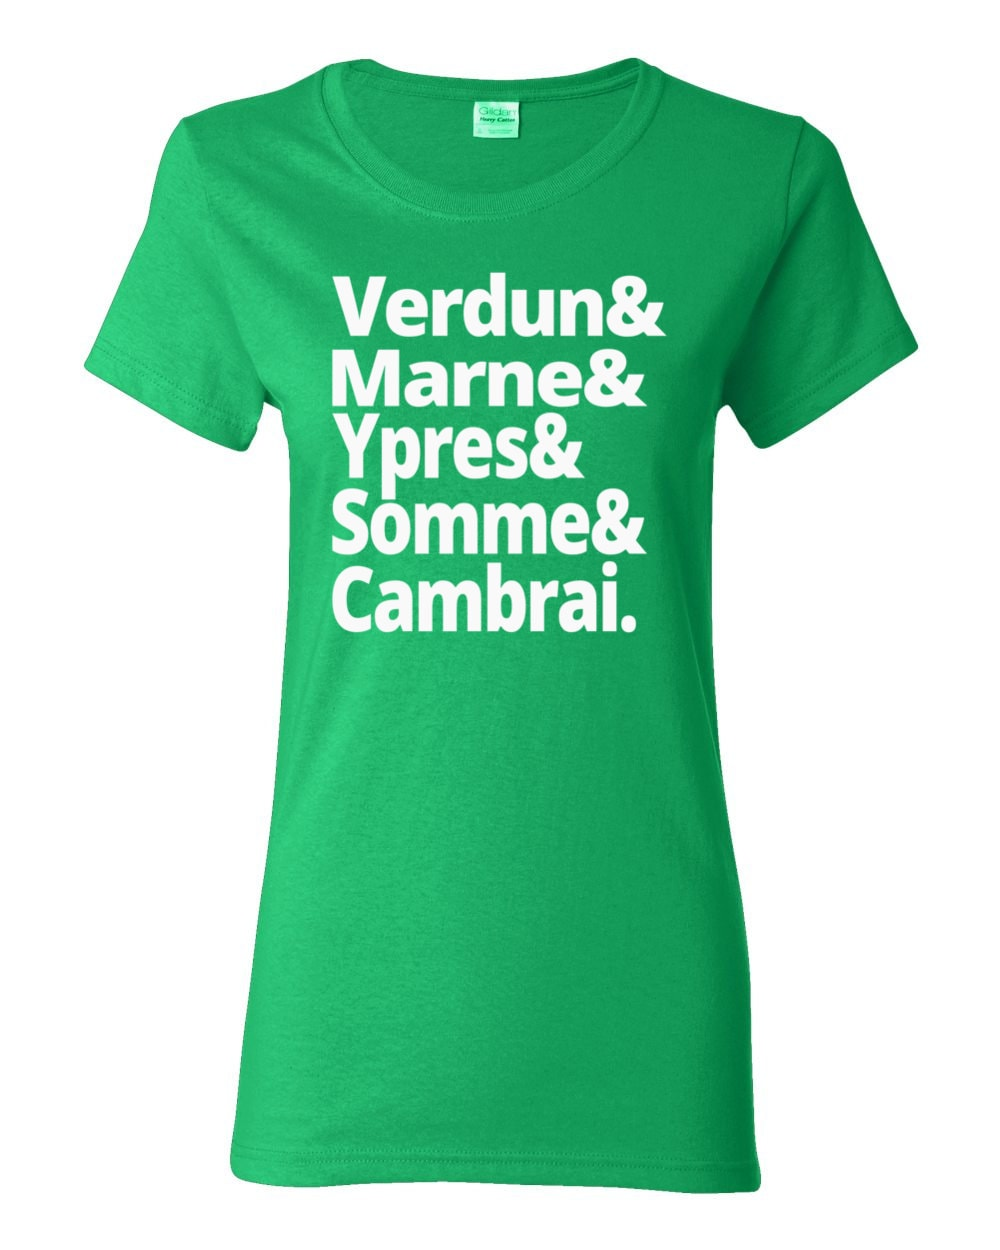 Battles of the First World War - Verdun, Marne, Ypres, Somme, Cambrai - Women's WWI History T-shirt